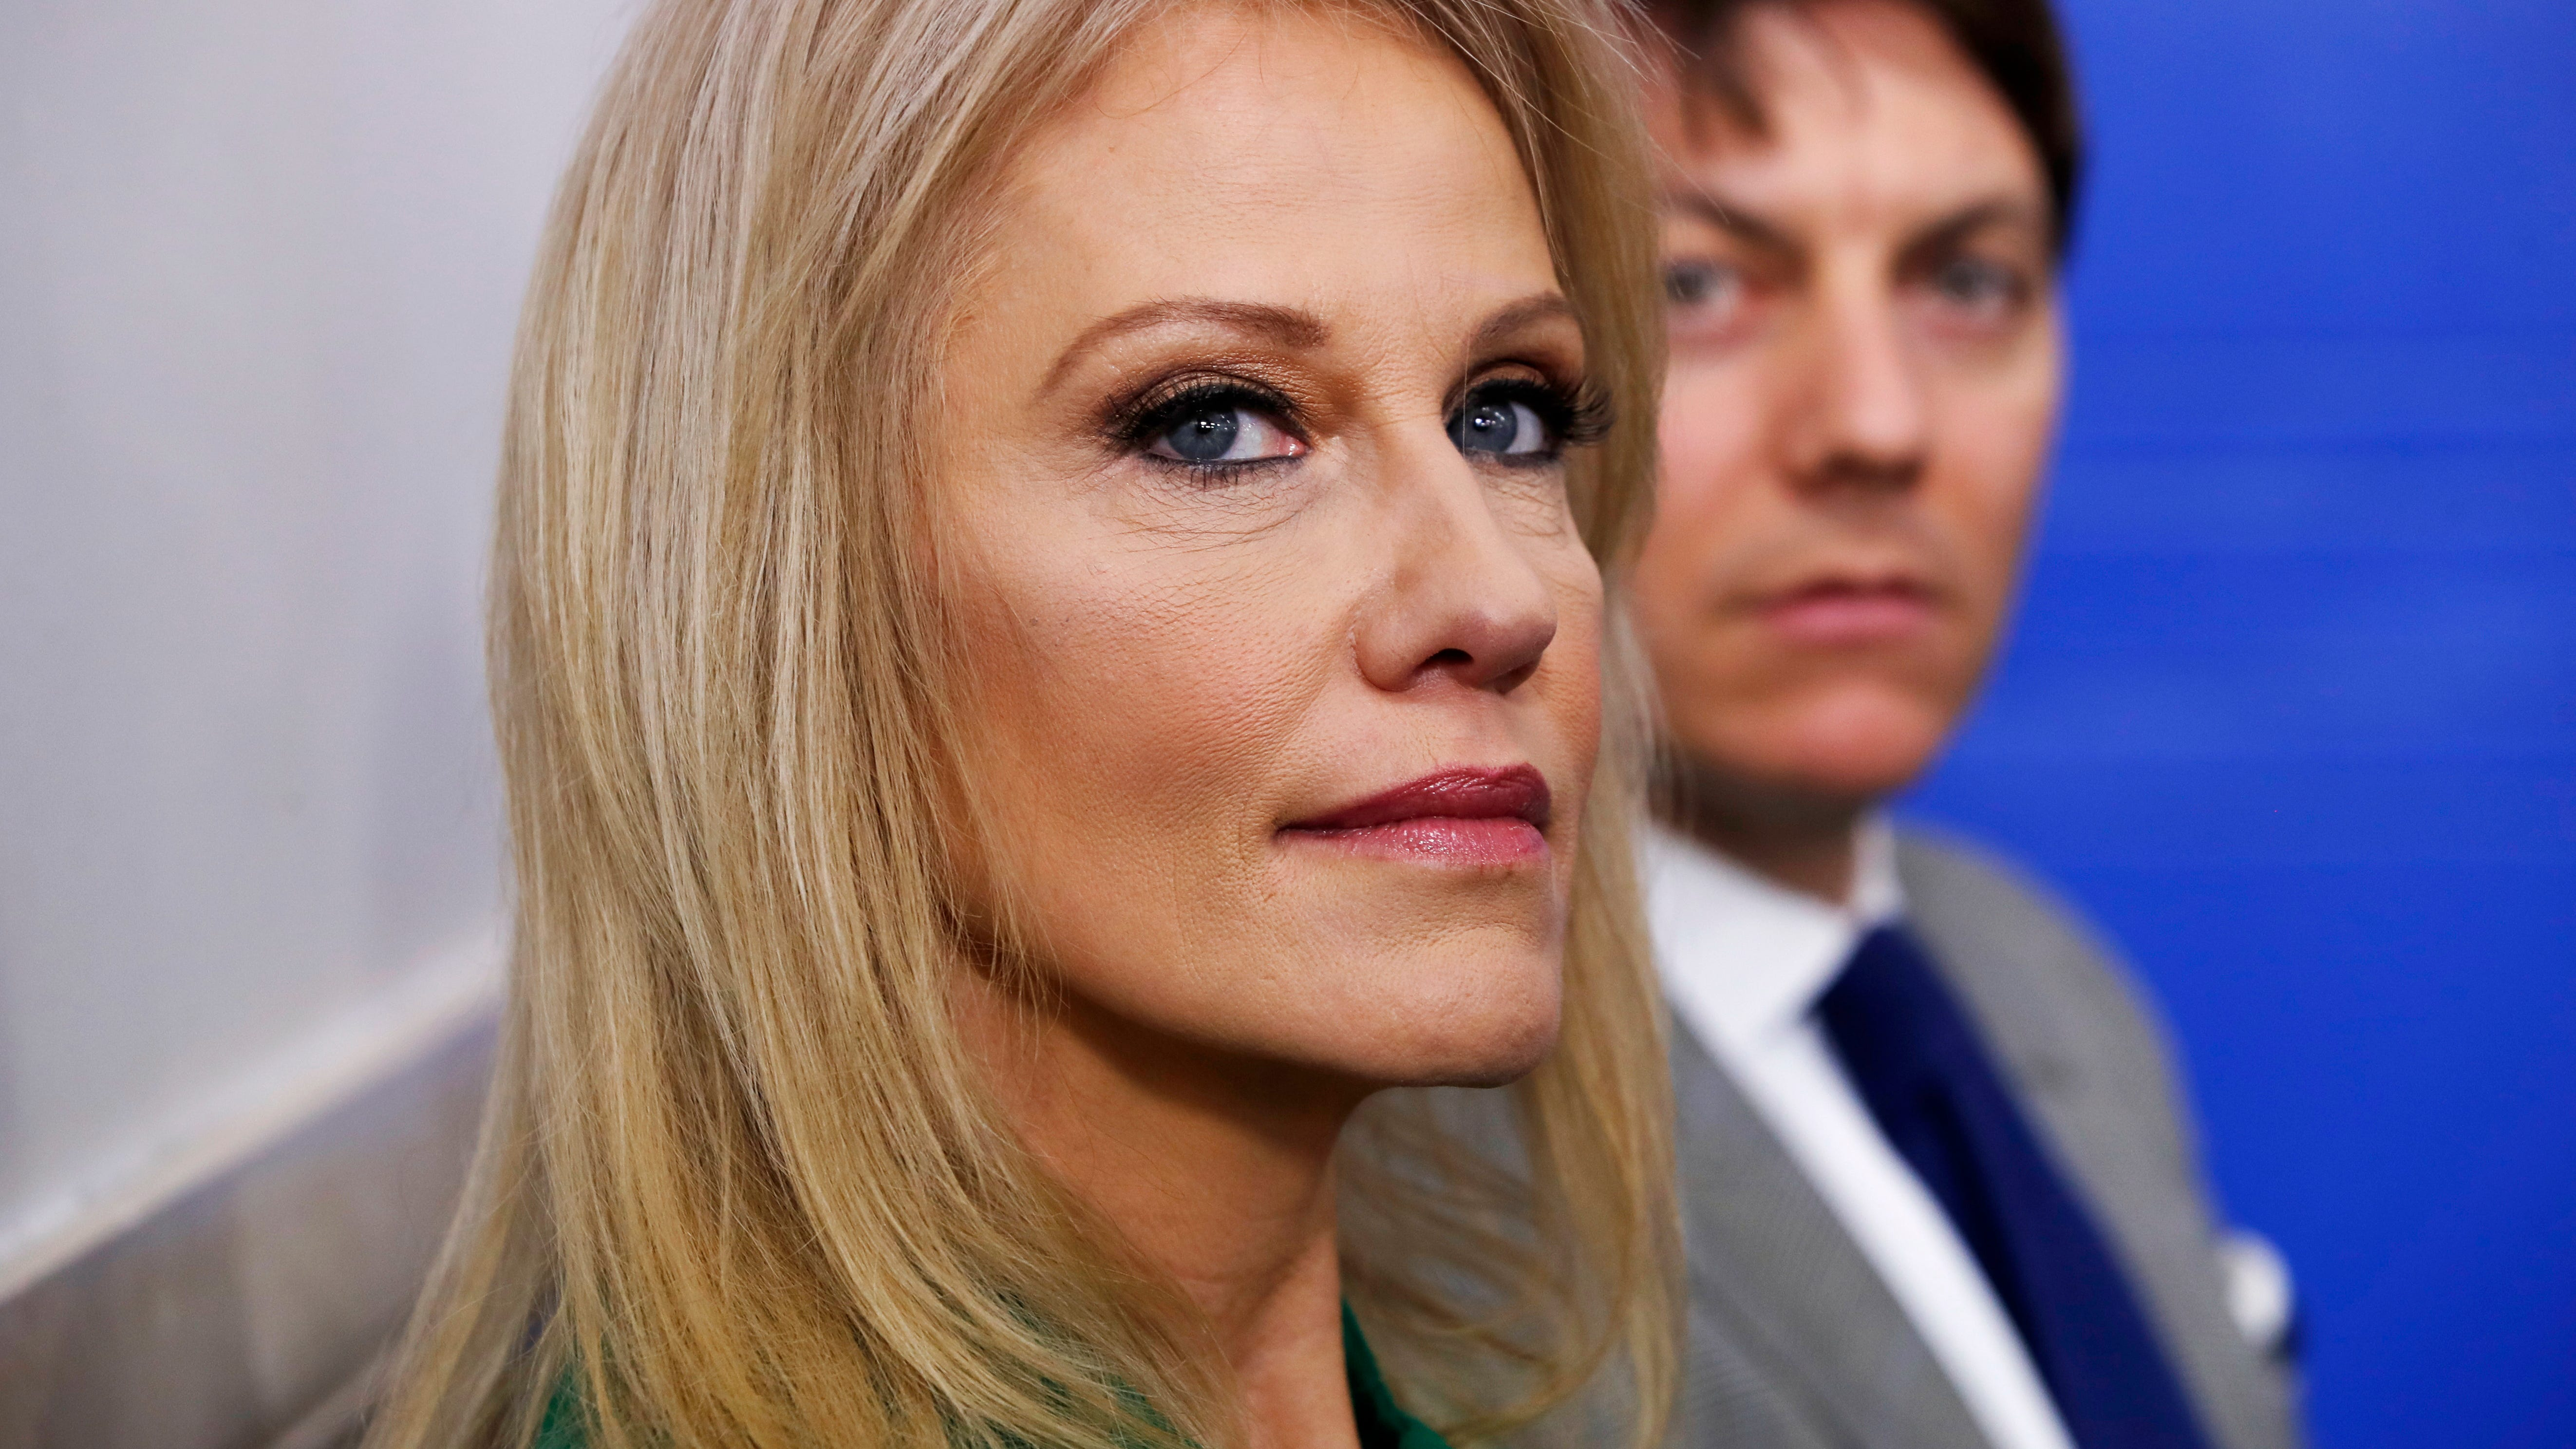 Kellyanne Conway, counselor to the President, left, and White House Deputy Press Secretary Hogan Gidley attend a news briefing at the White House in Washington, Dec. 18, 2018.